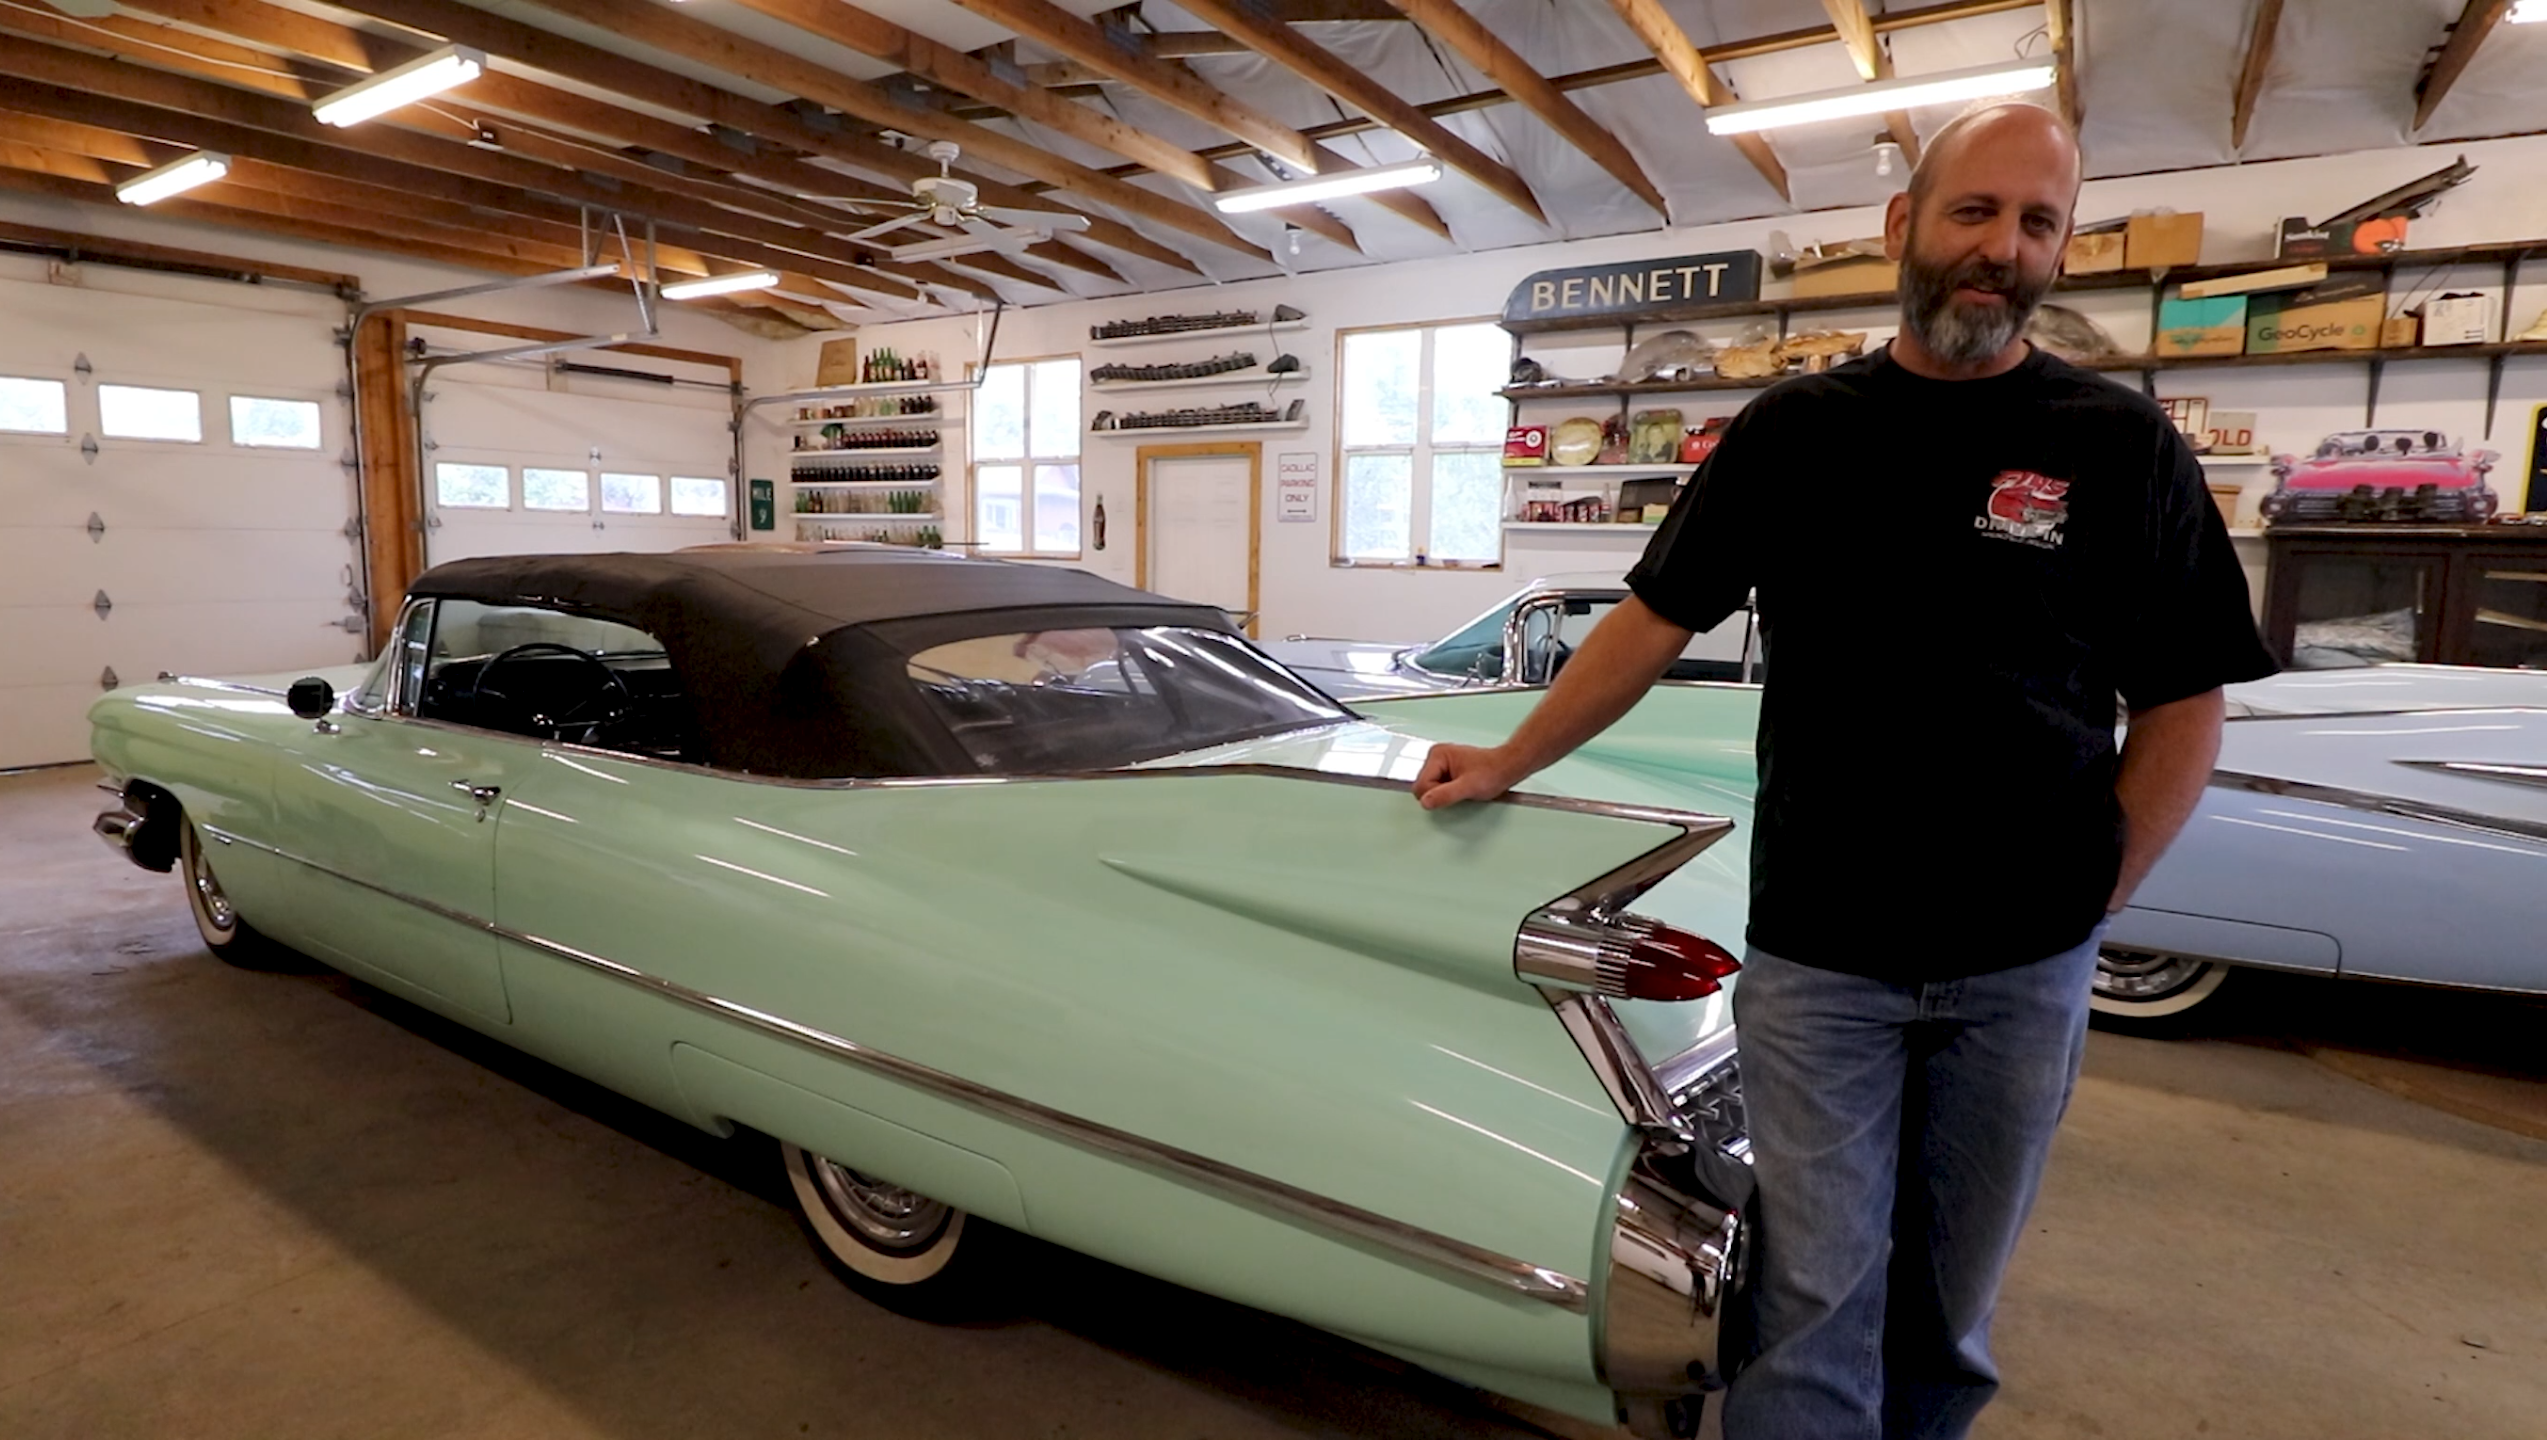 Dan Morehouse with old vintage cadillac in garage